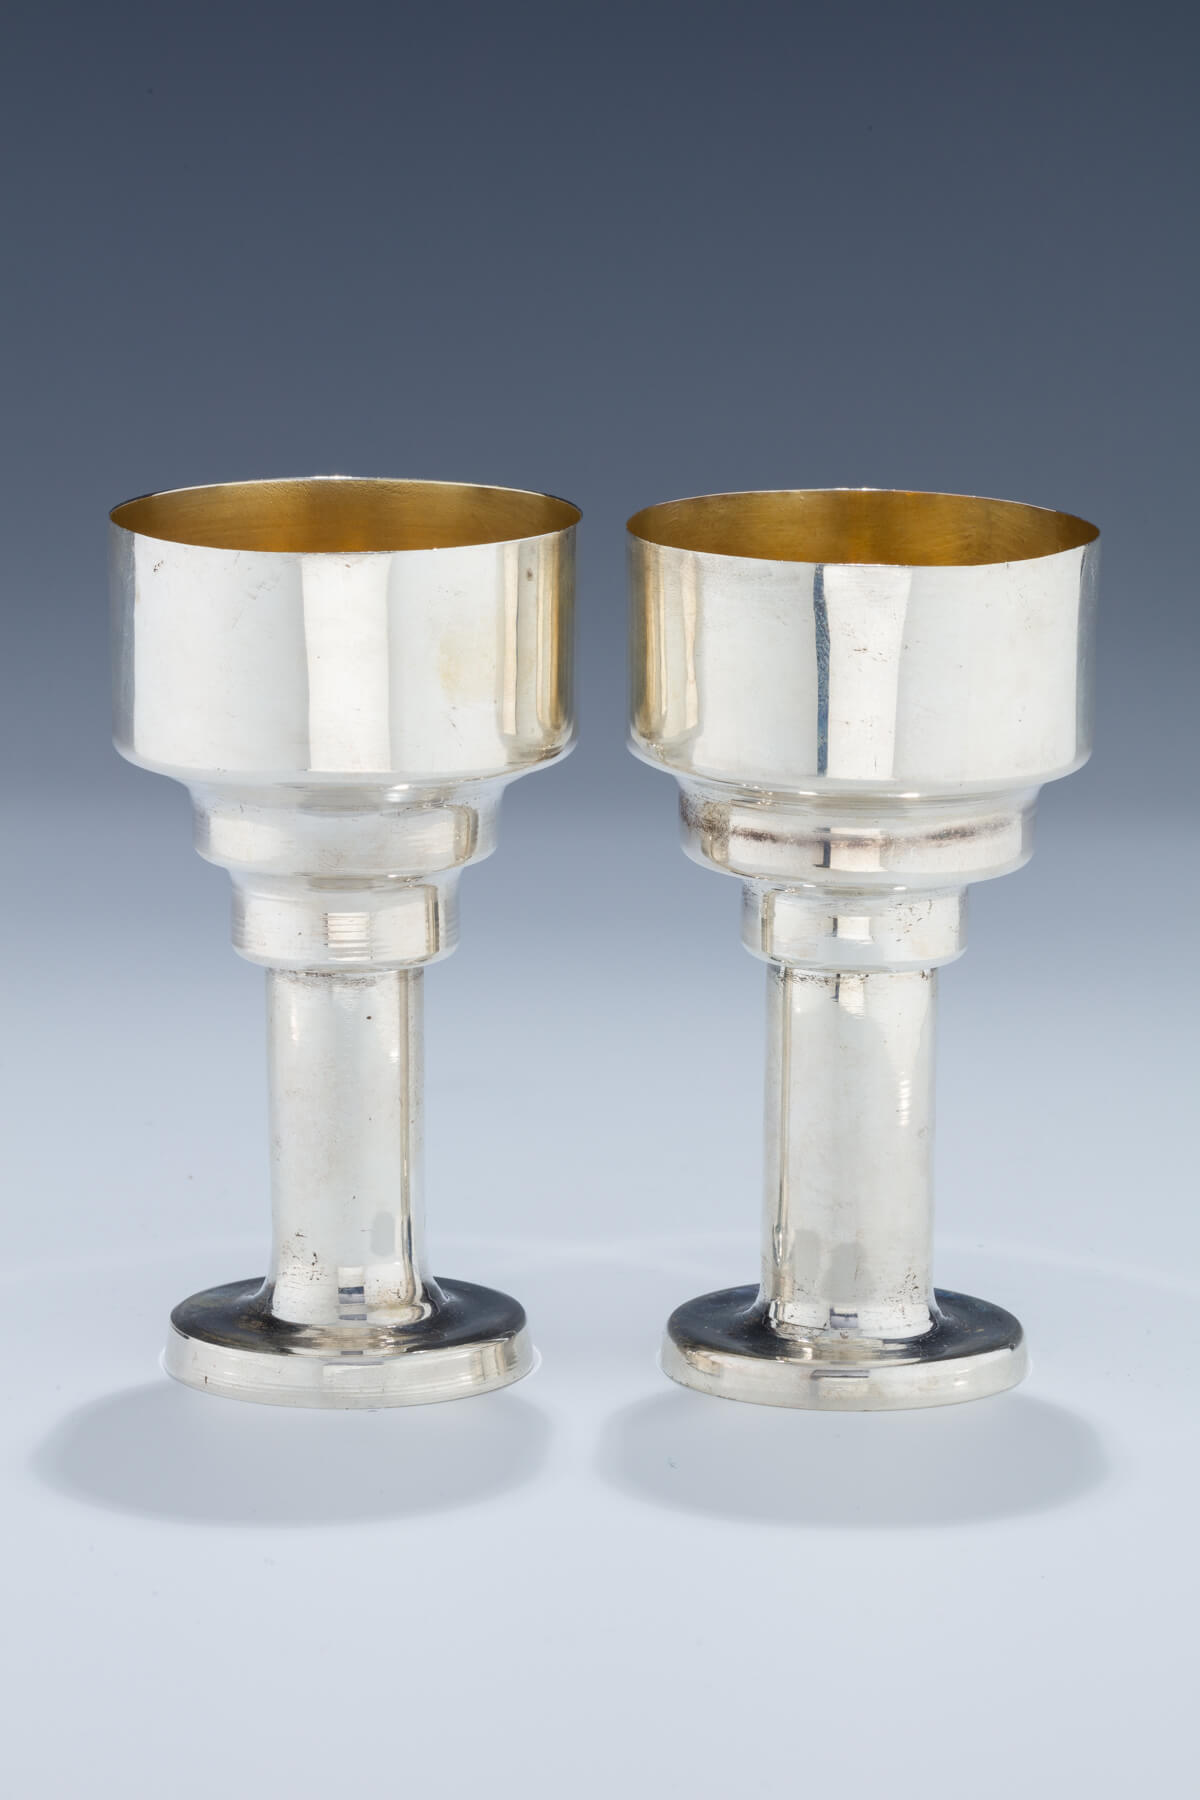 144. A Pair of Sterling Silver Kiddush Cups by B. Friedlaender